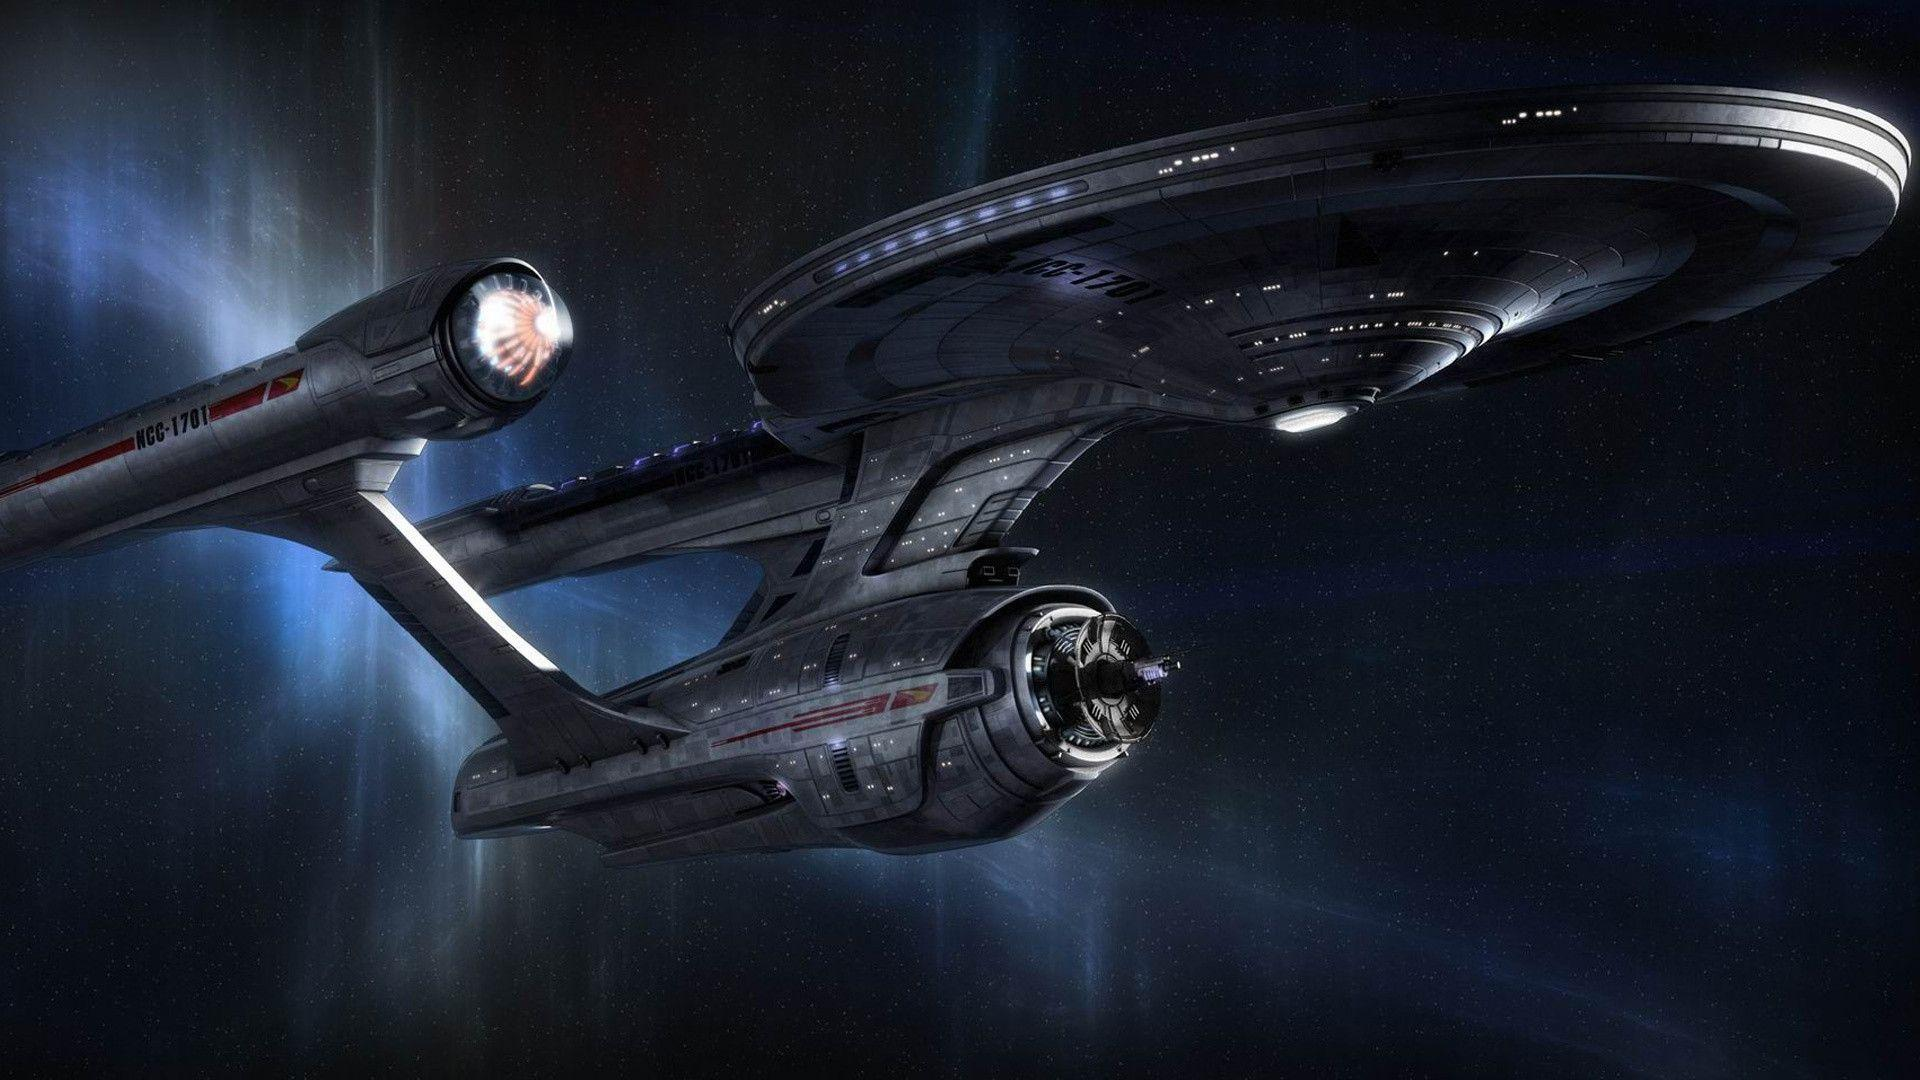 android star trek wallpaper 1920x1080 - photo #20